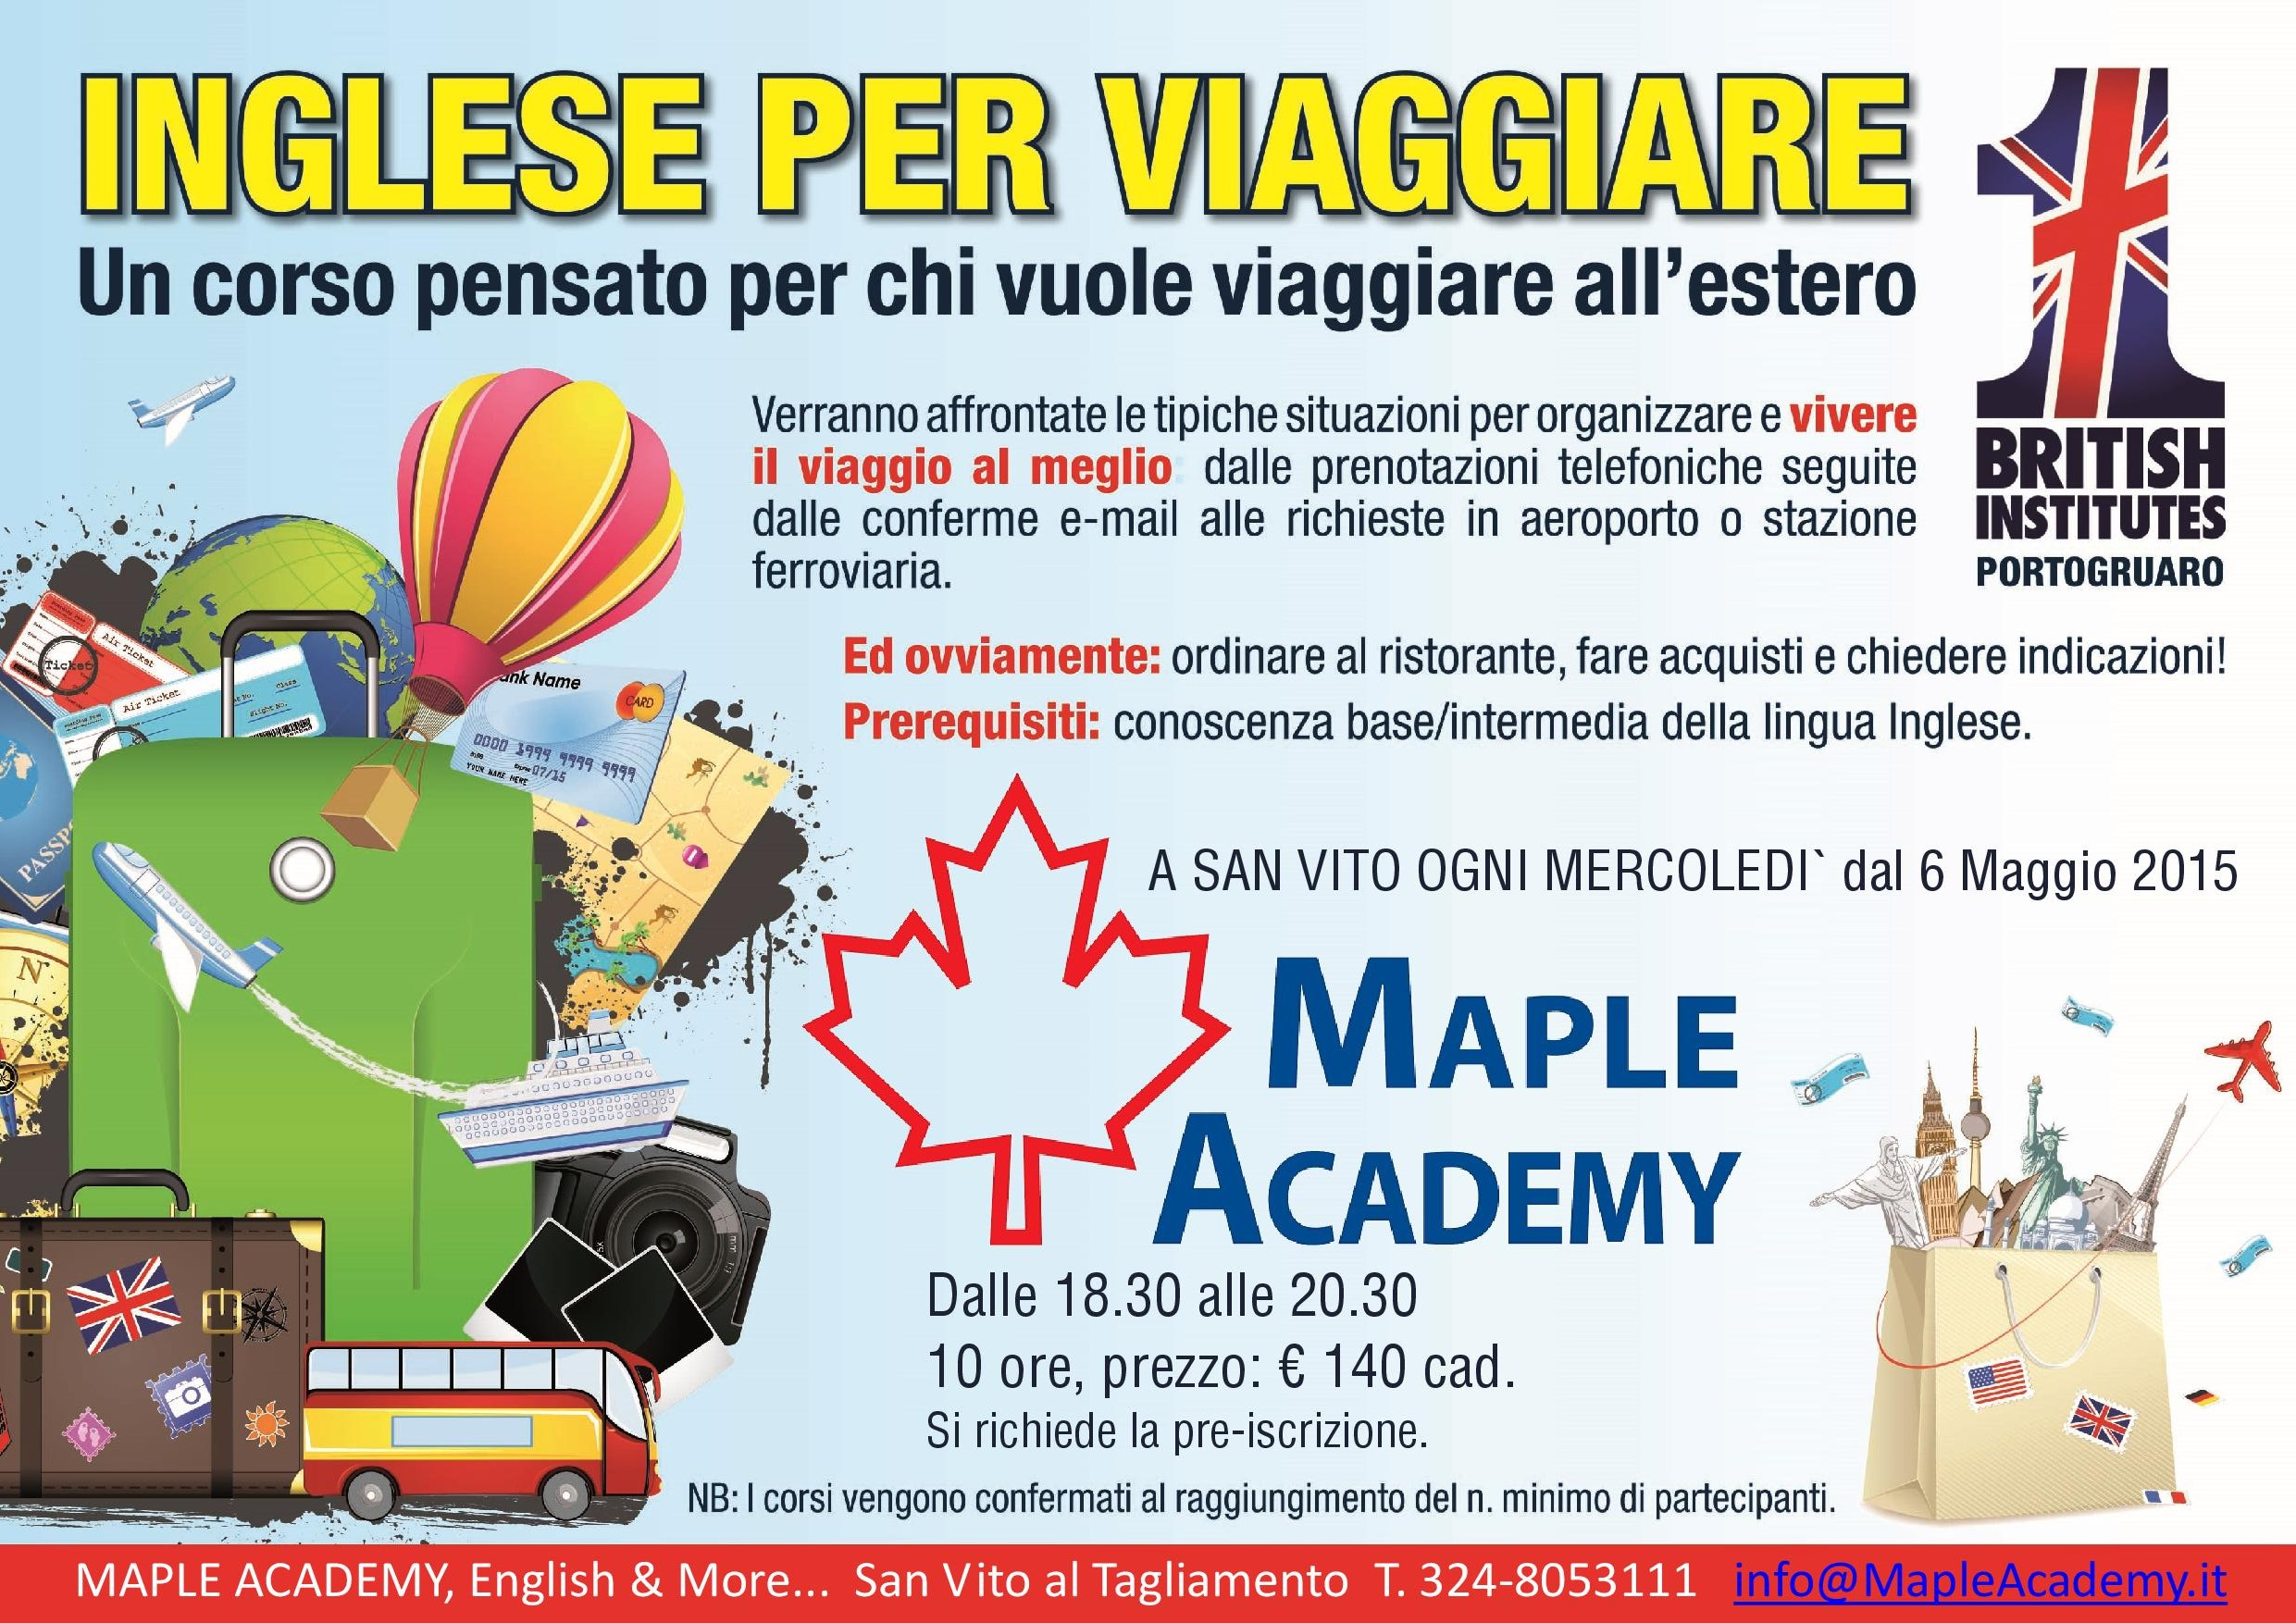 Inglese per Viaggiare Maple Academy